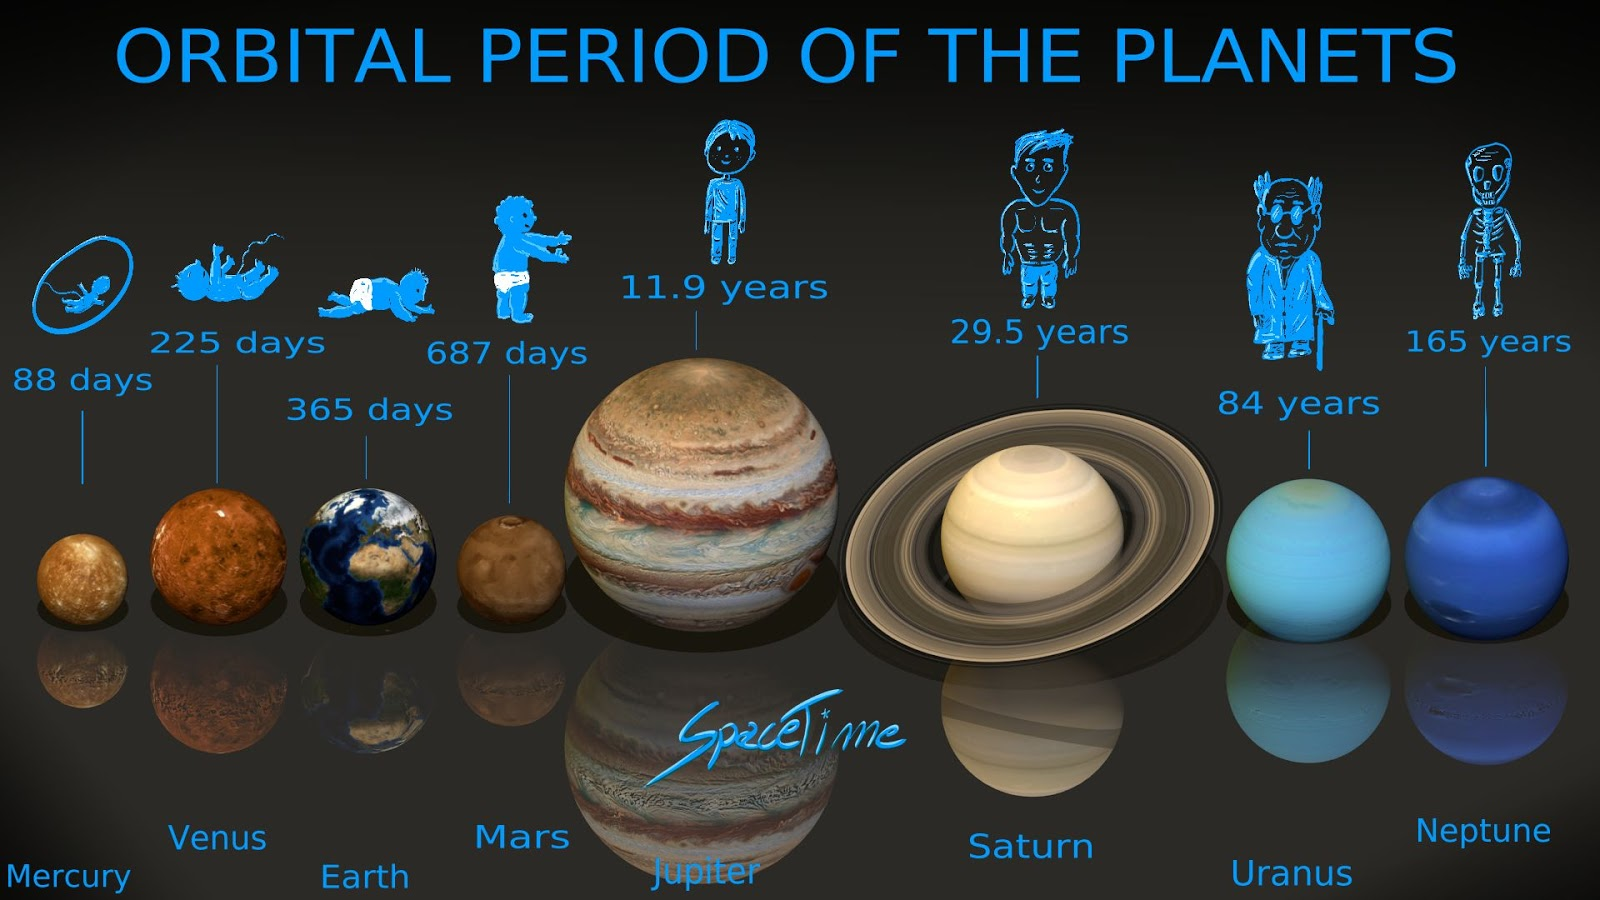 ORBITAL PERIODS OF THE PLANETS